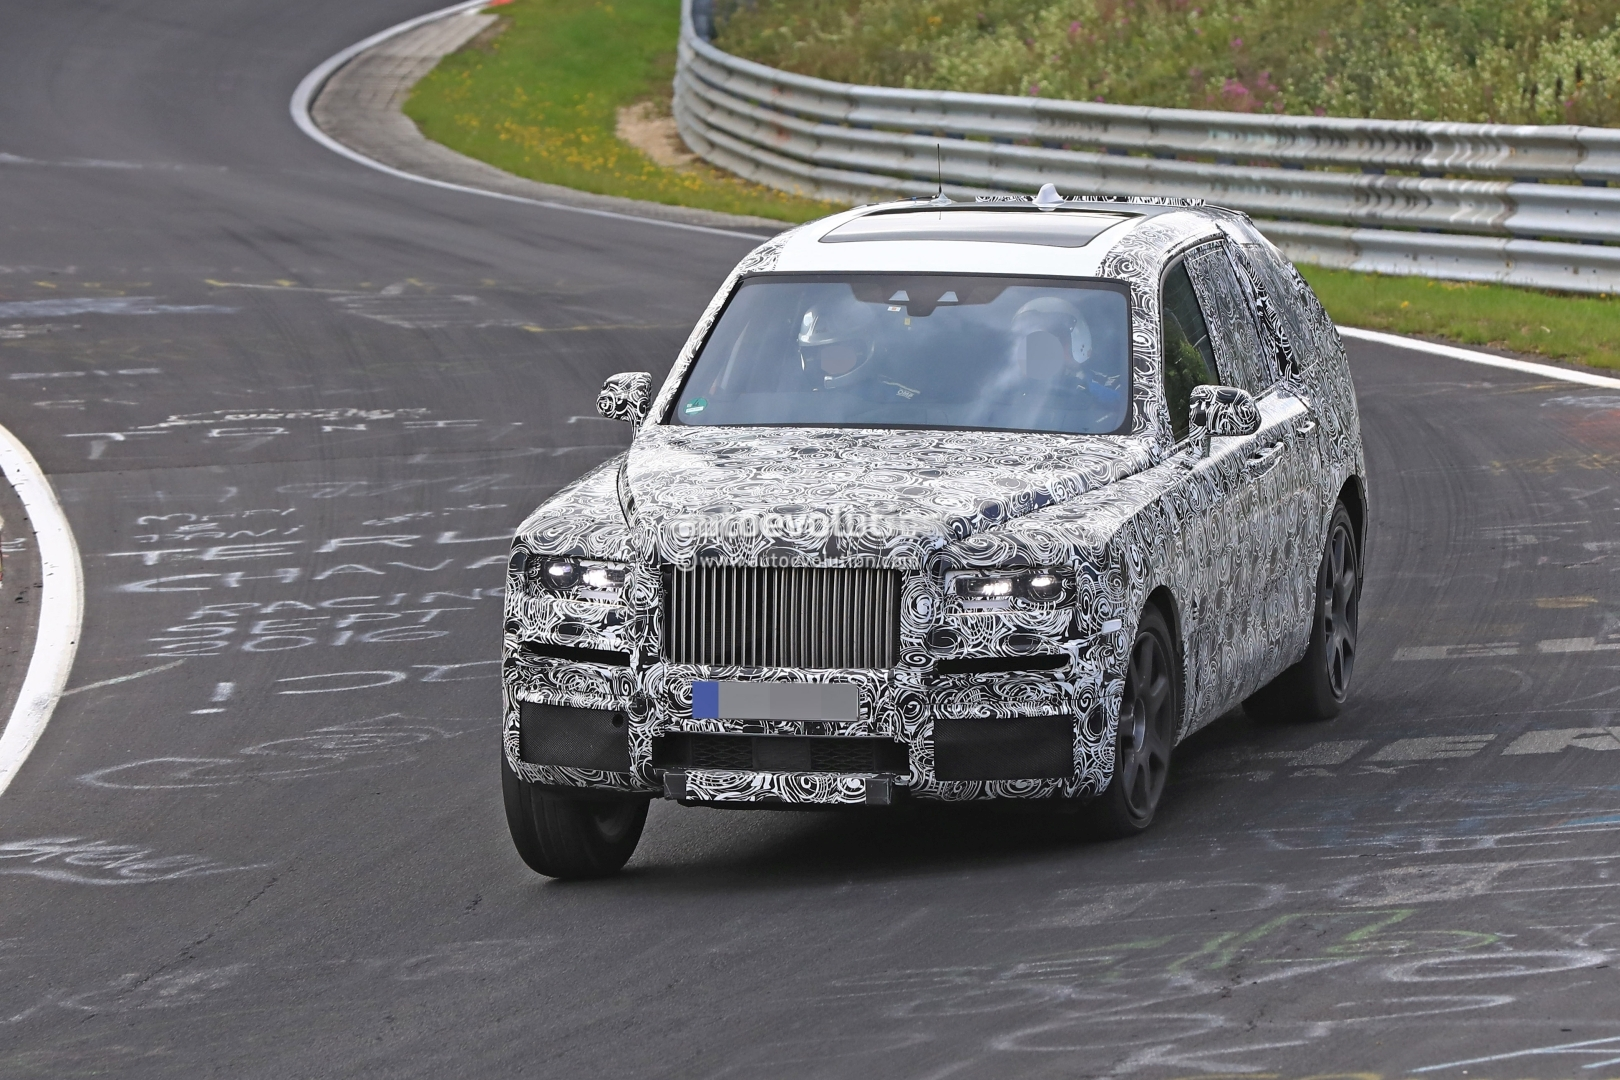 Rolls-Royce Cullinan Shows Heavy Body Roll in Nurburgring Elephant Spyshots